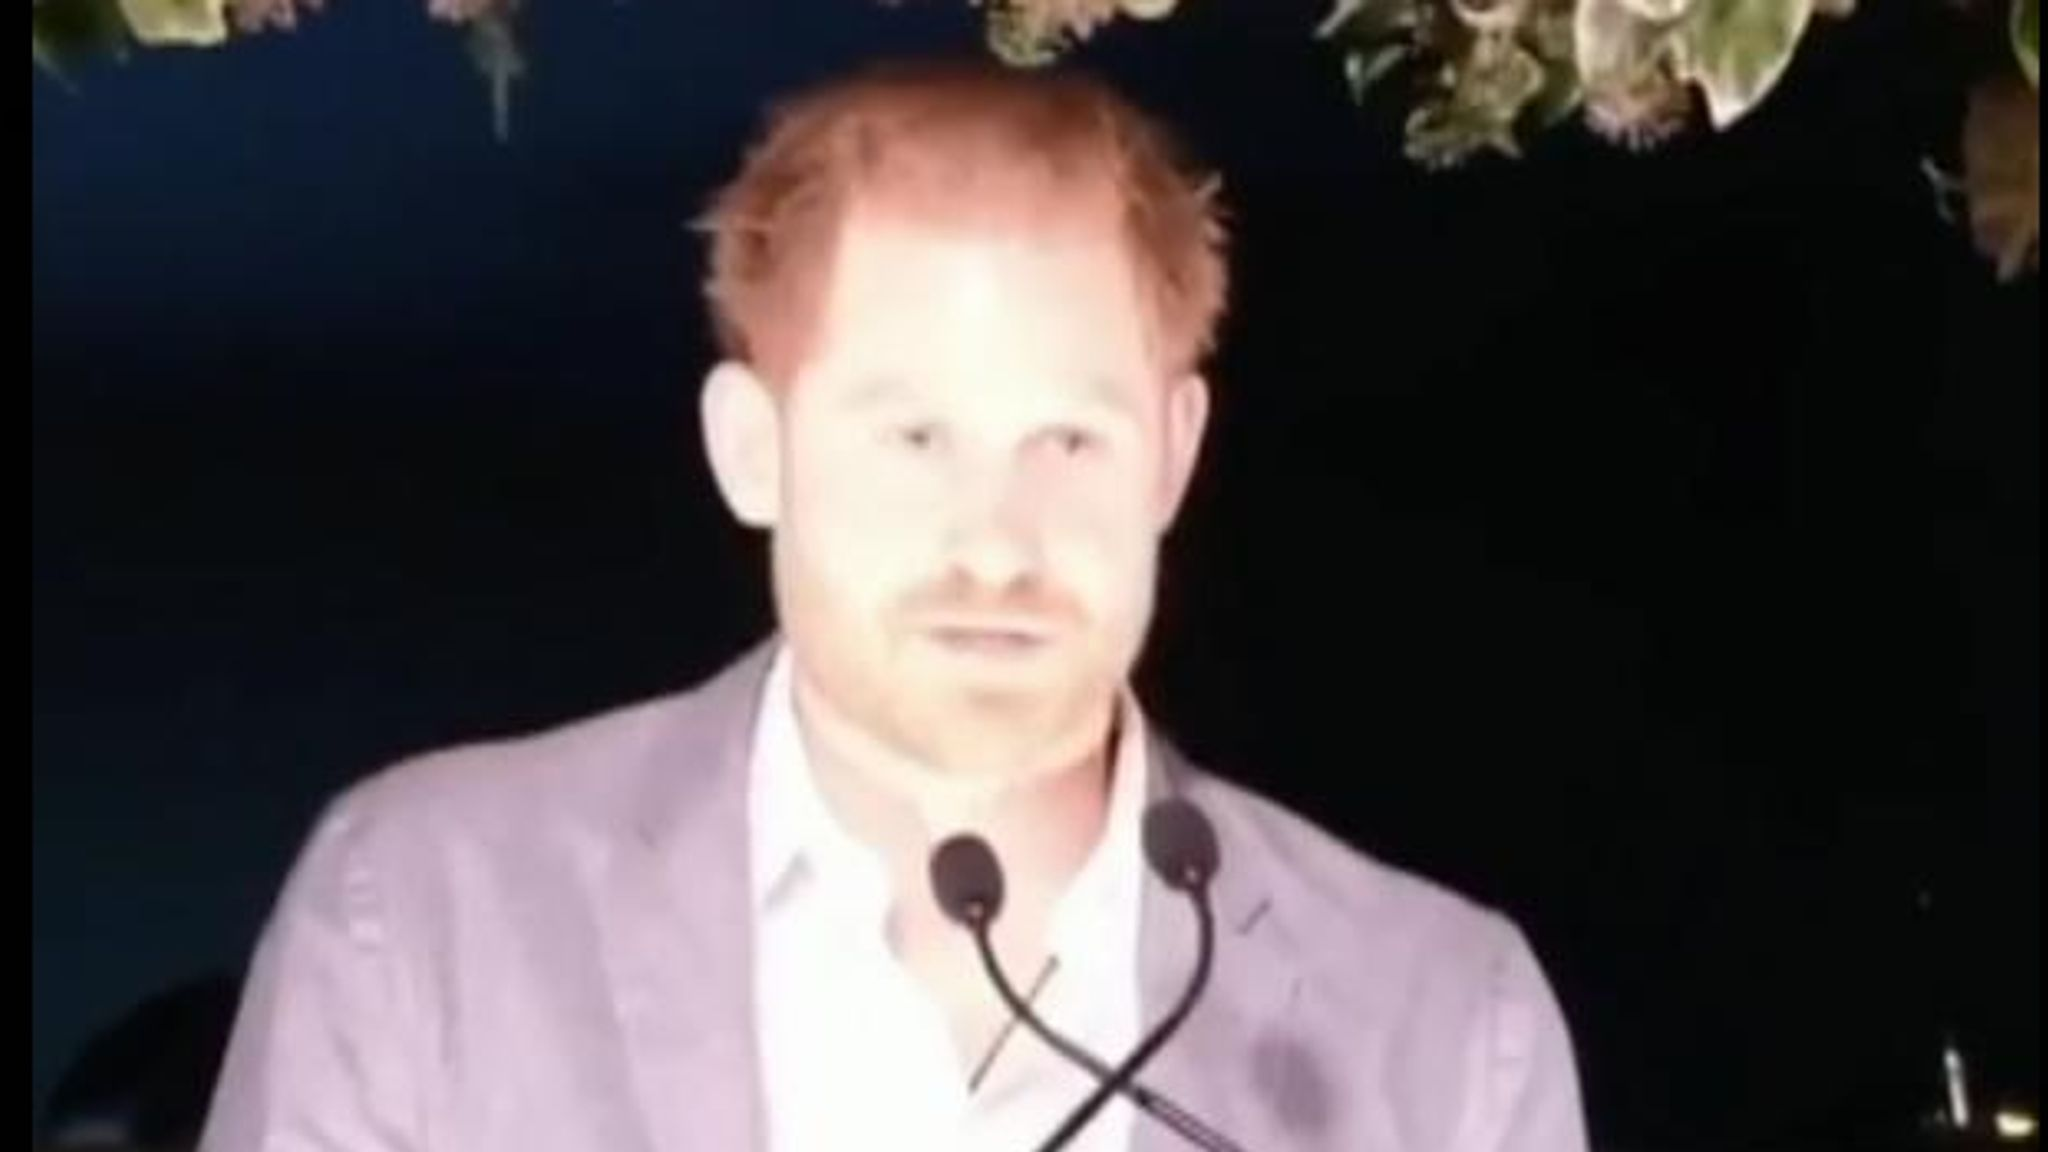 Prince Harry on leaving royal role: 'There was no other option'